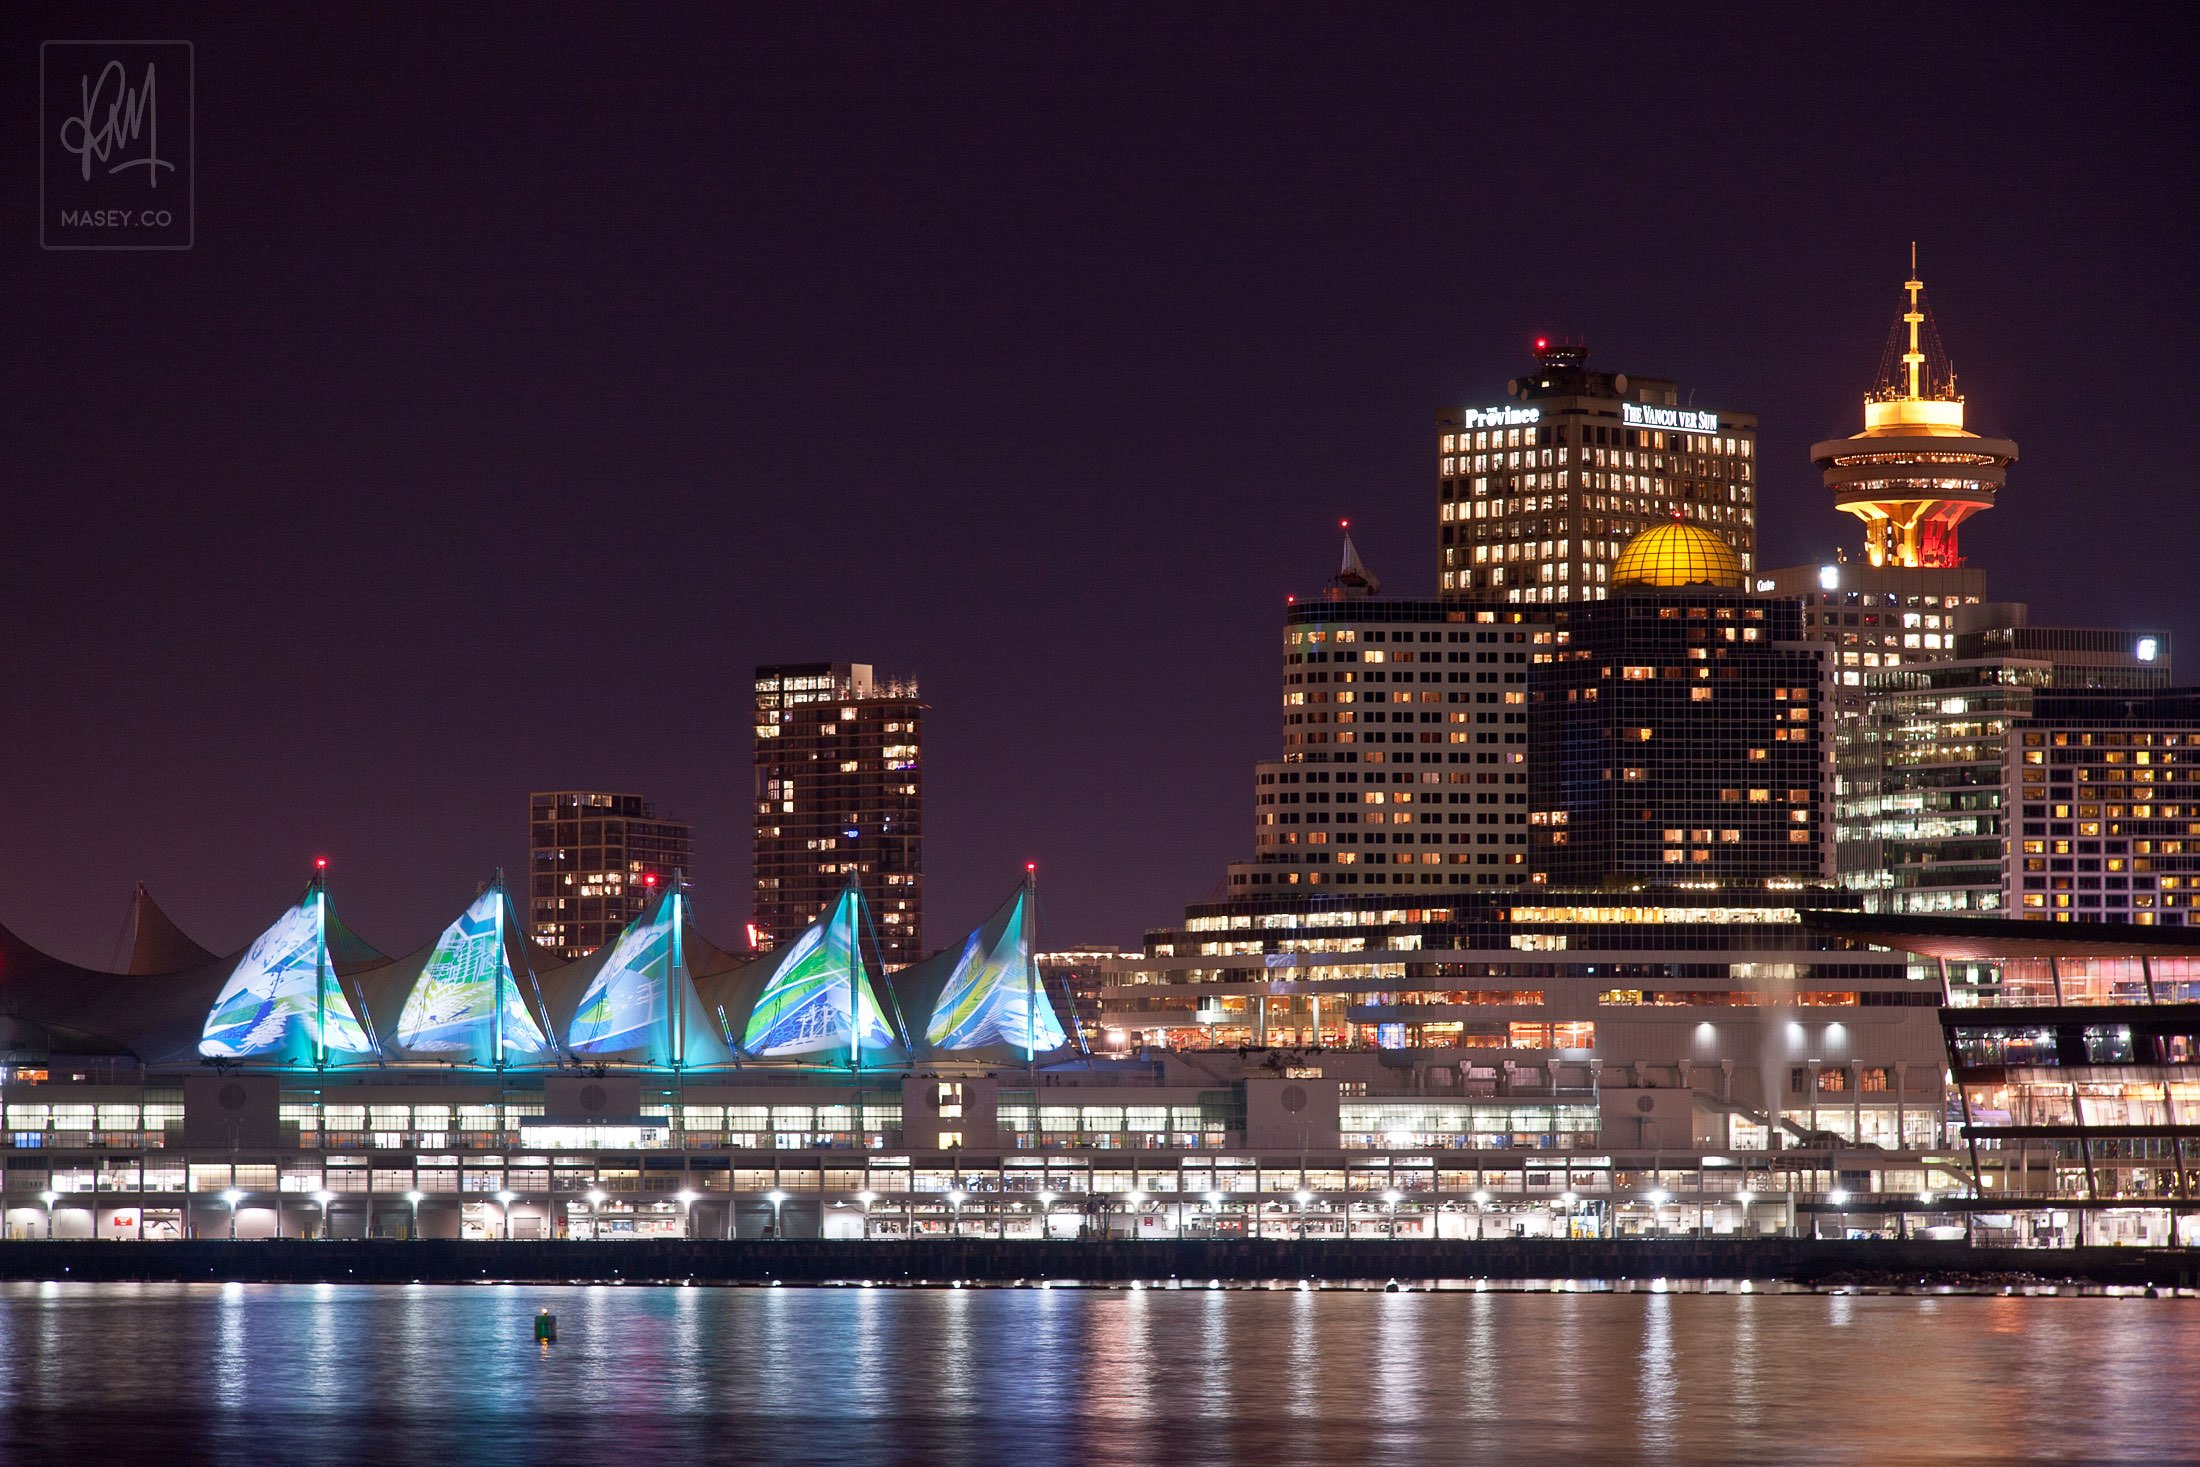 The sails on Canada Place have had a bit of an Olympic-flavoured makeover too.